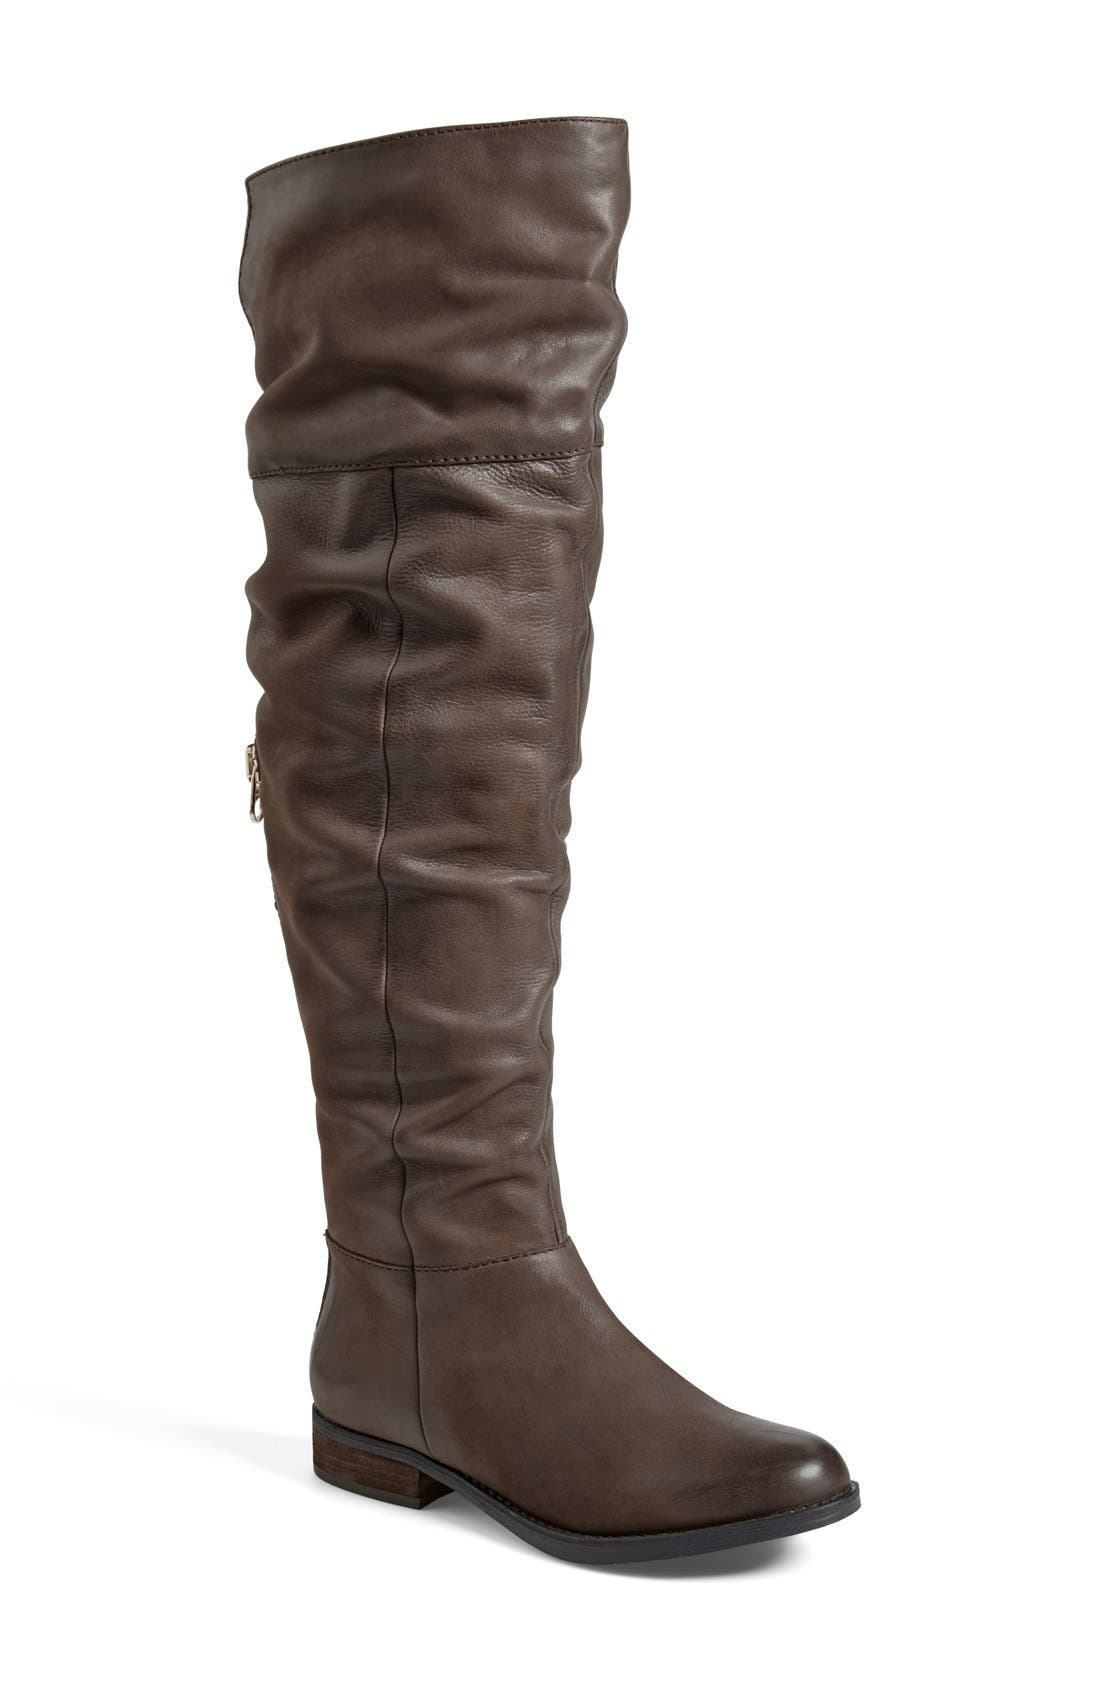 'Heisnbrg' Leather Over the Knee Boot,                             Main thumbnail 1, color,                             Brown Leather